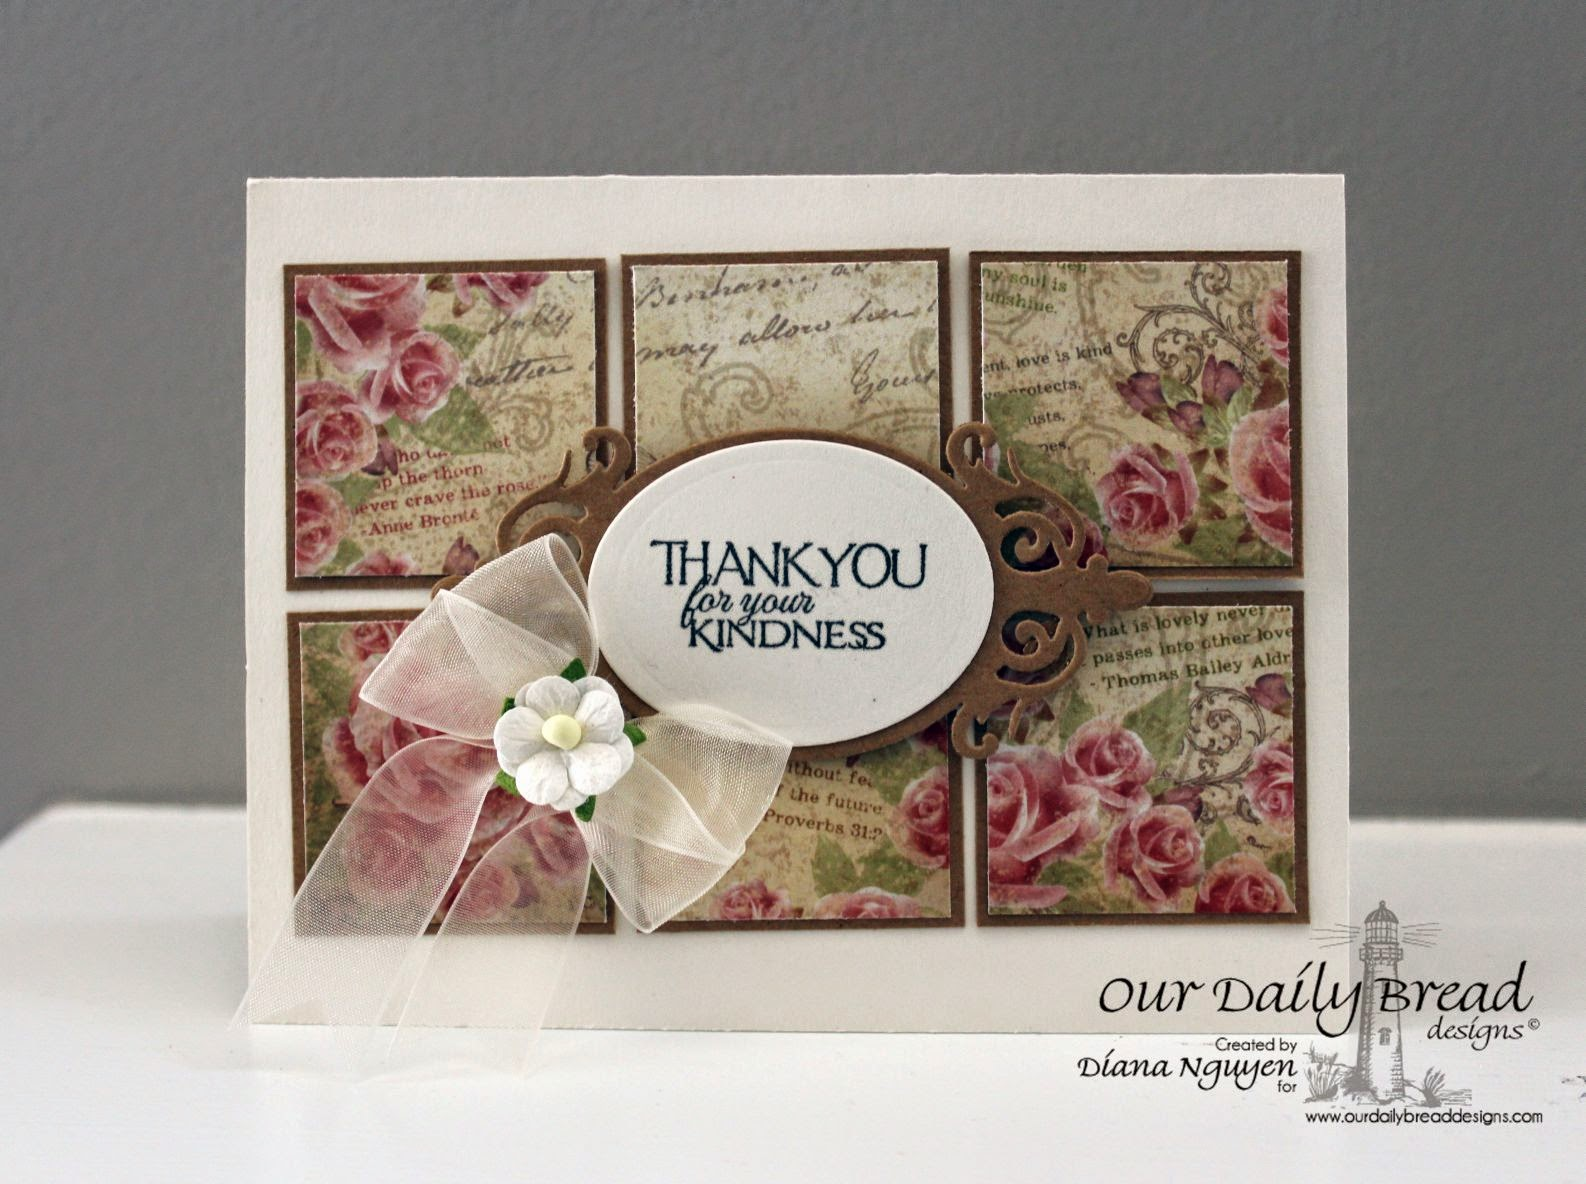 Diana Nguyen, ODBD, thank you card, Our Daily Bread Designs